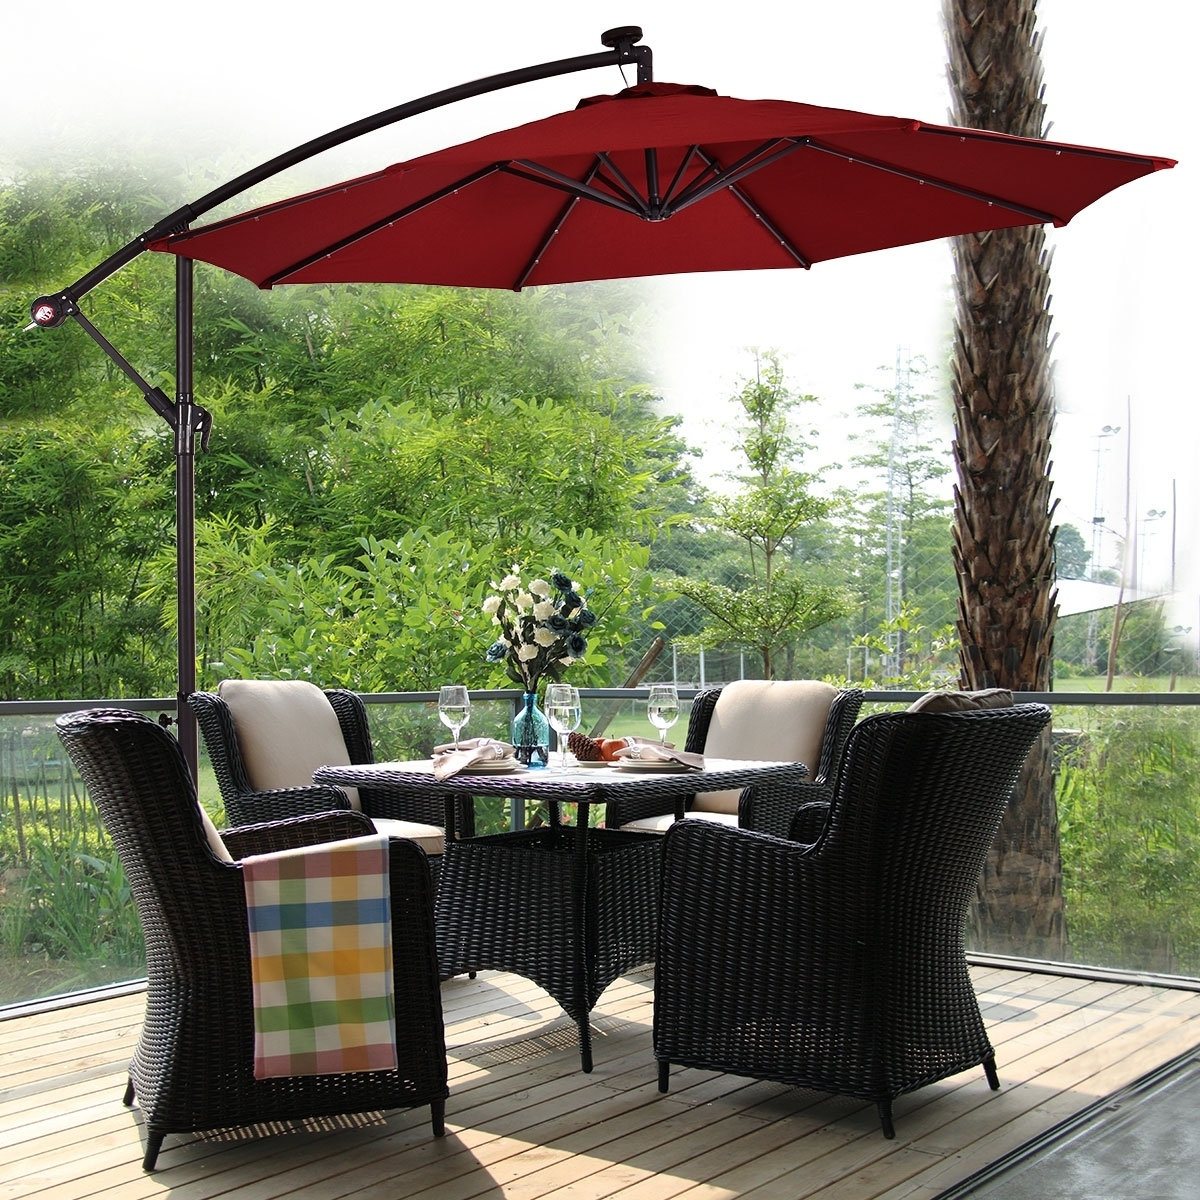 Buy Patio Umbrellas Online At Overstock (View 20 of 20)